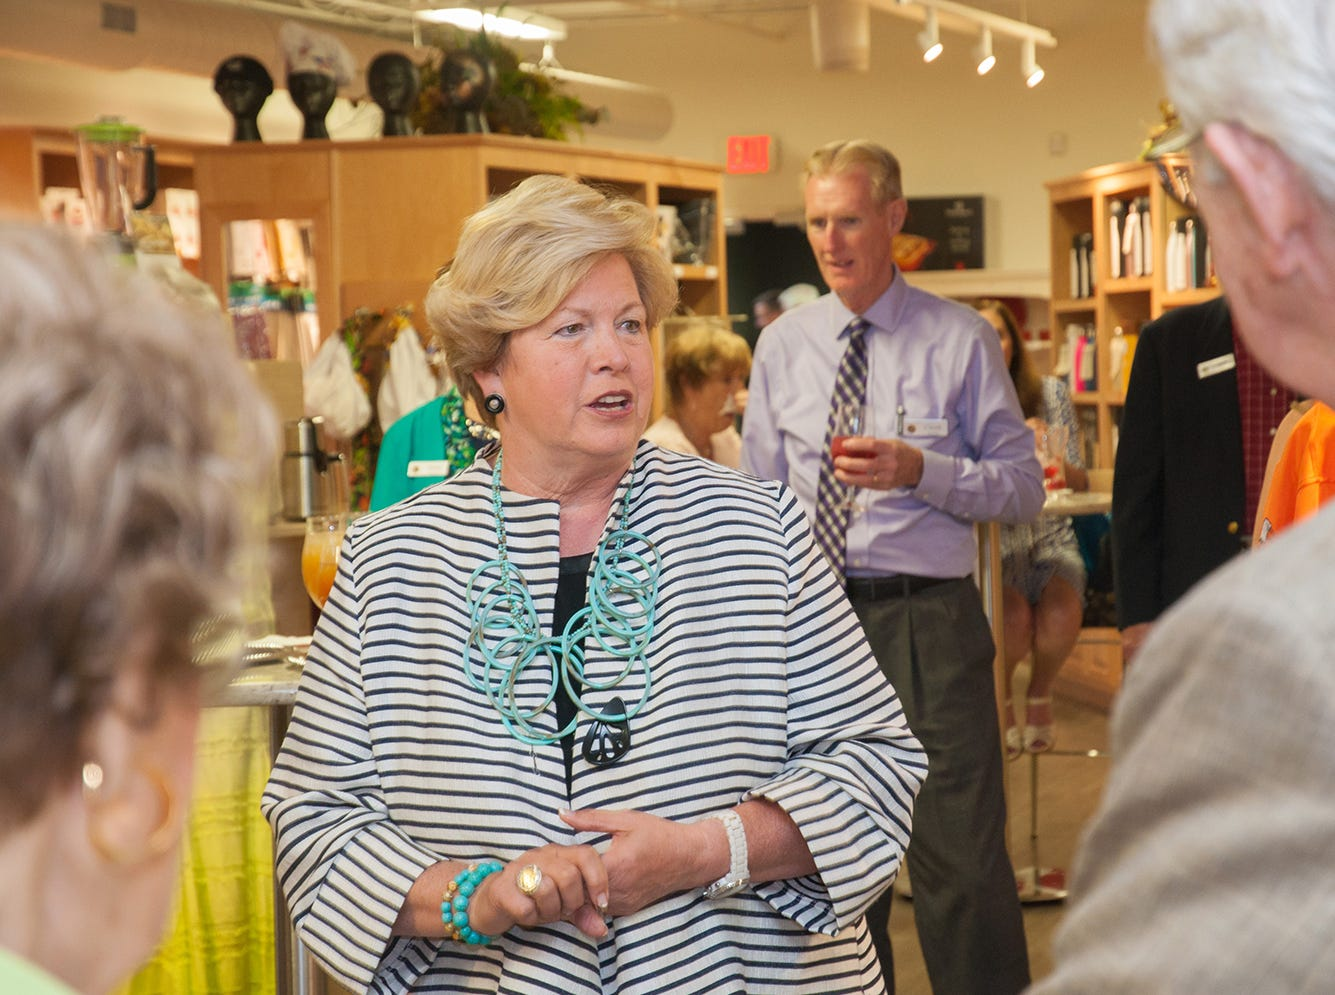 Joan Cronan speaks with guests gathered for Carson-Newman's Friendraiser event.